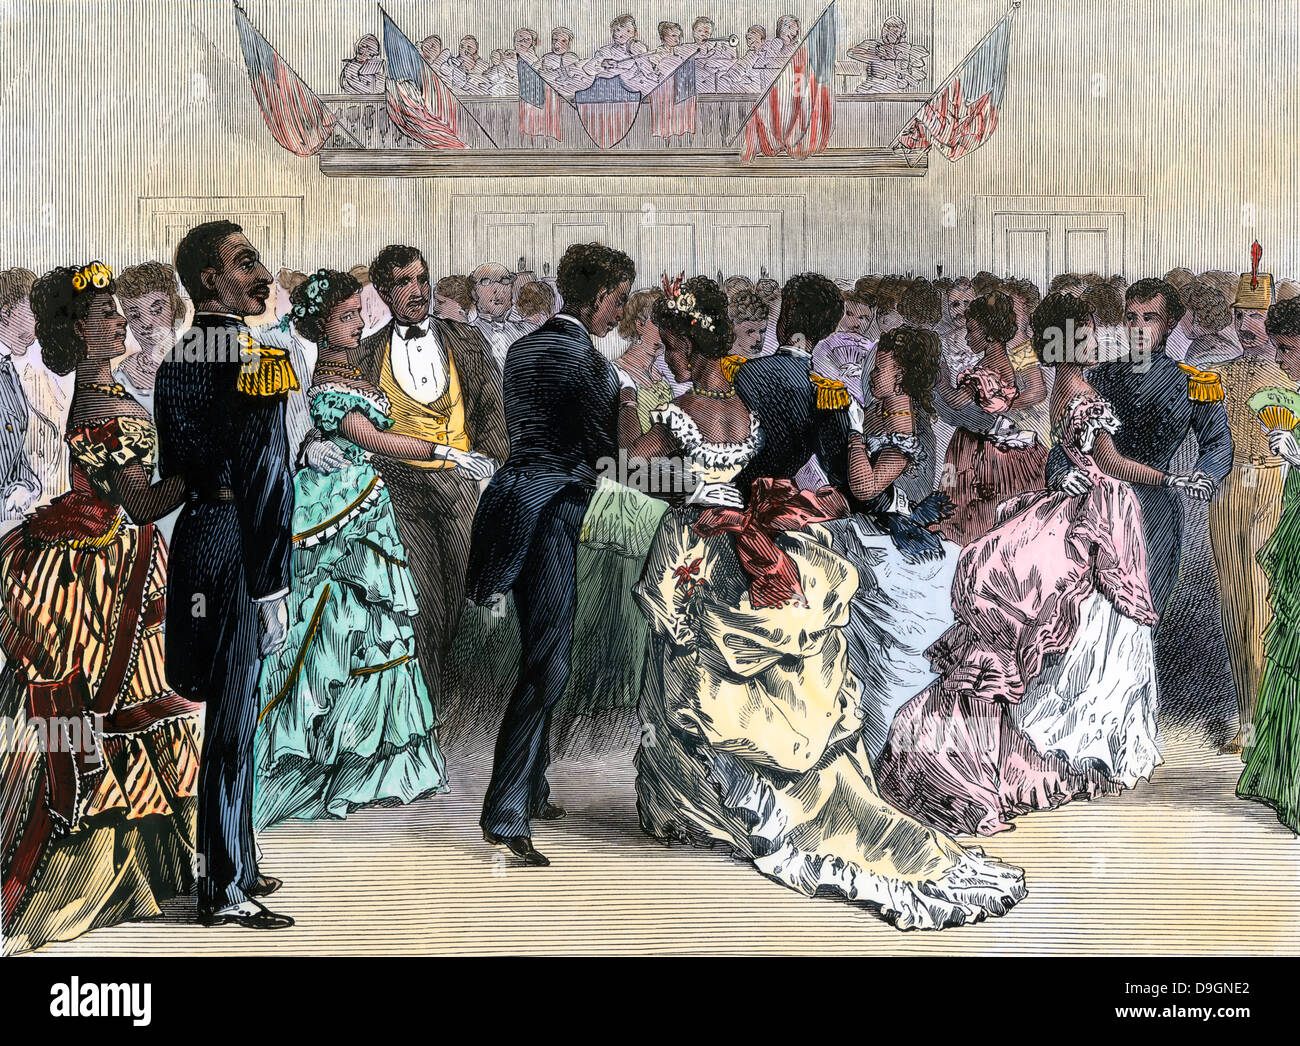 Ball of the Skidmore Guard, a black military organization, NYC, 1870s. Hand-colored woodcut - Stock Image